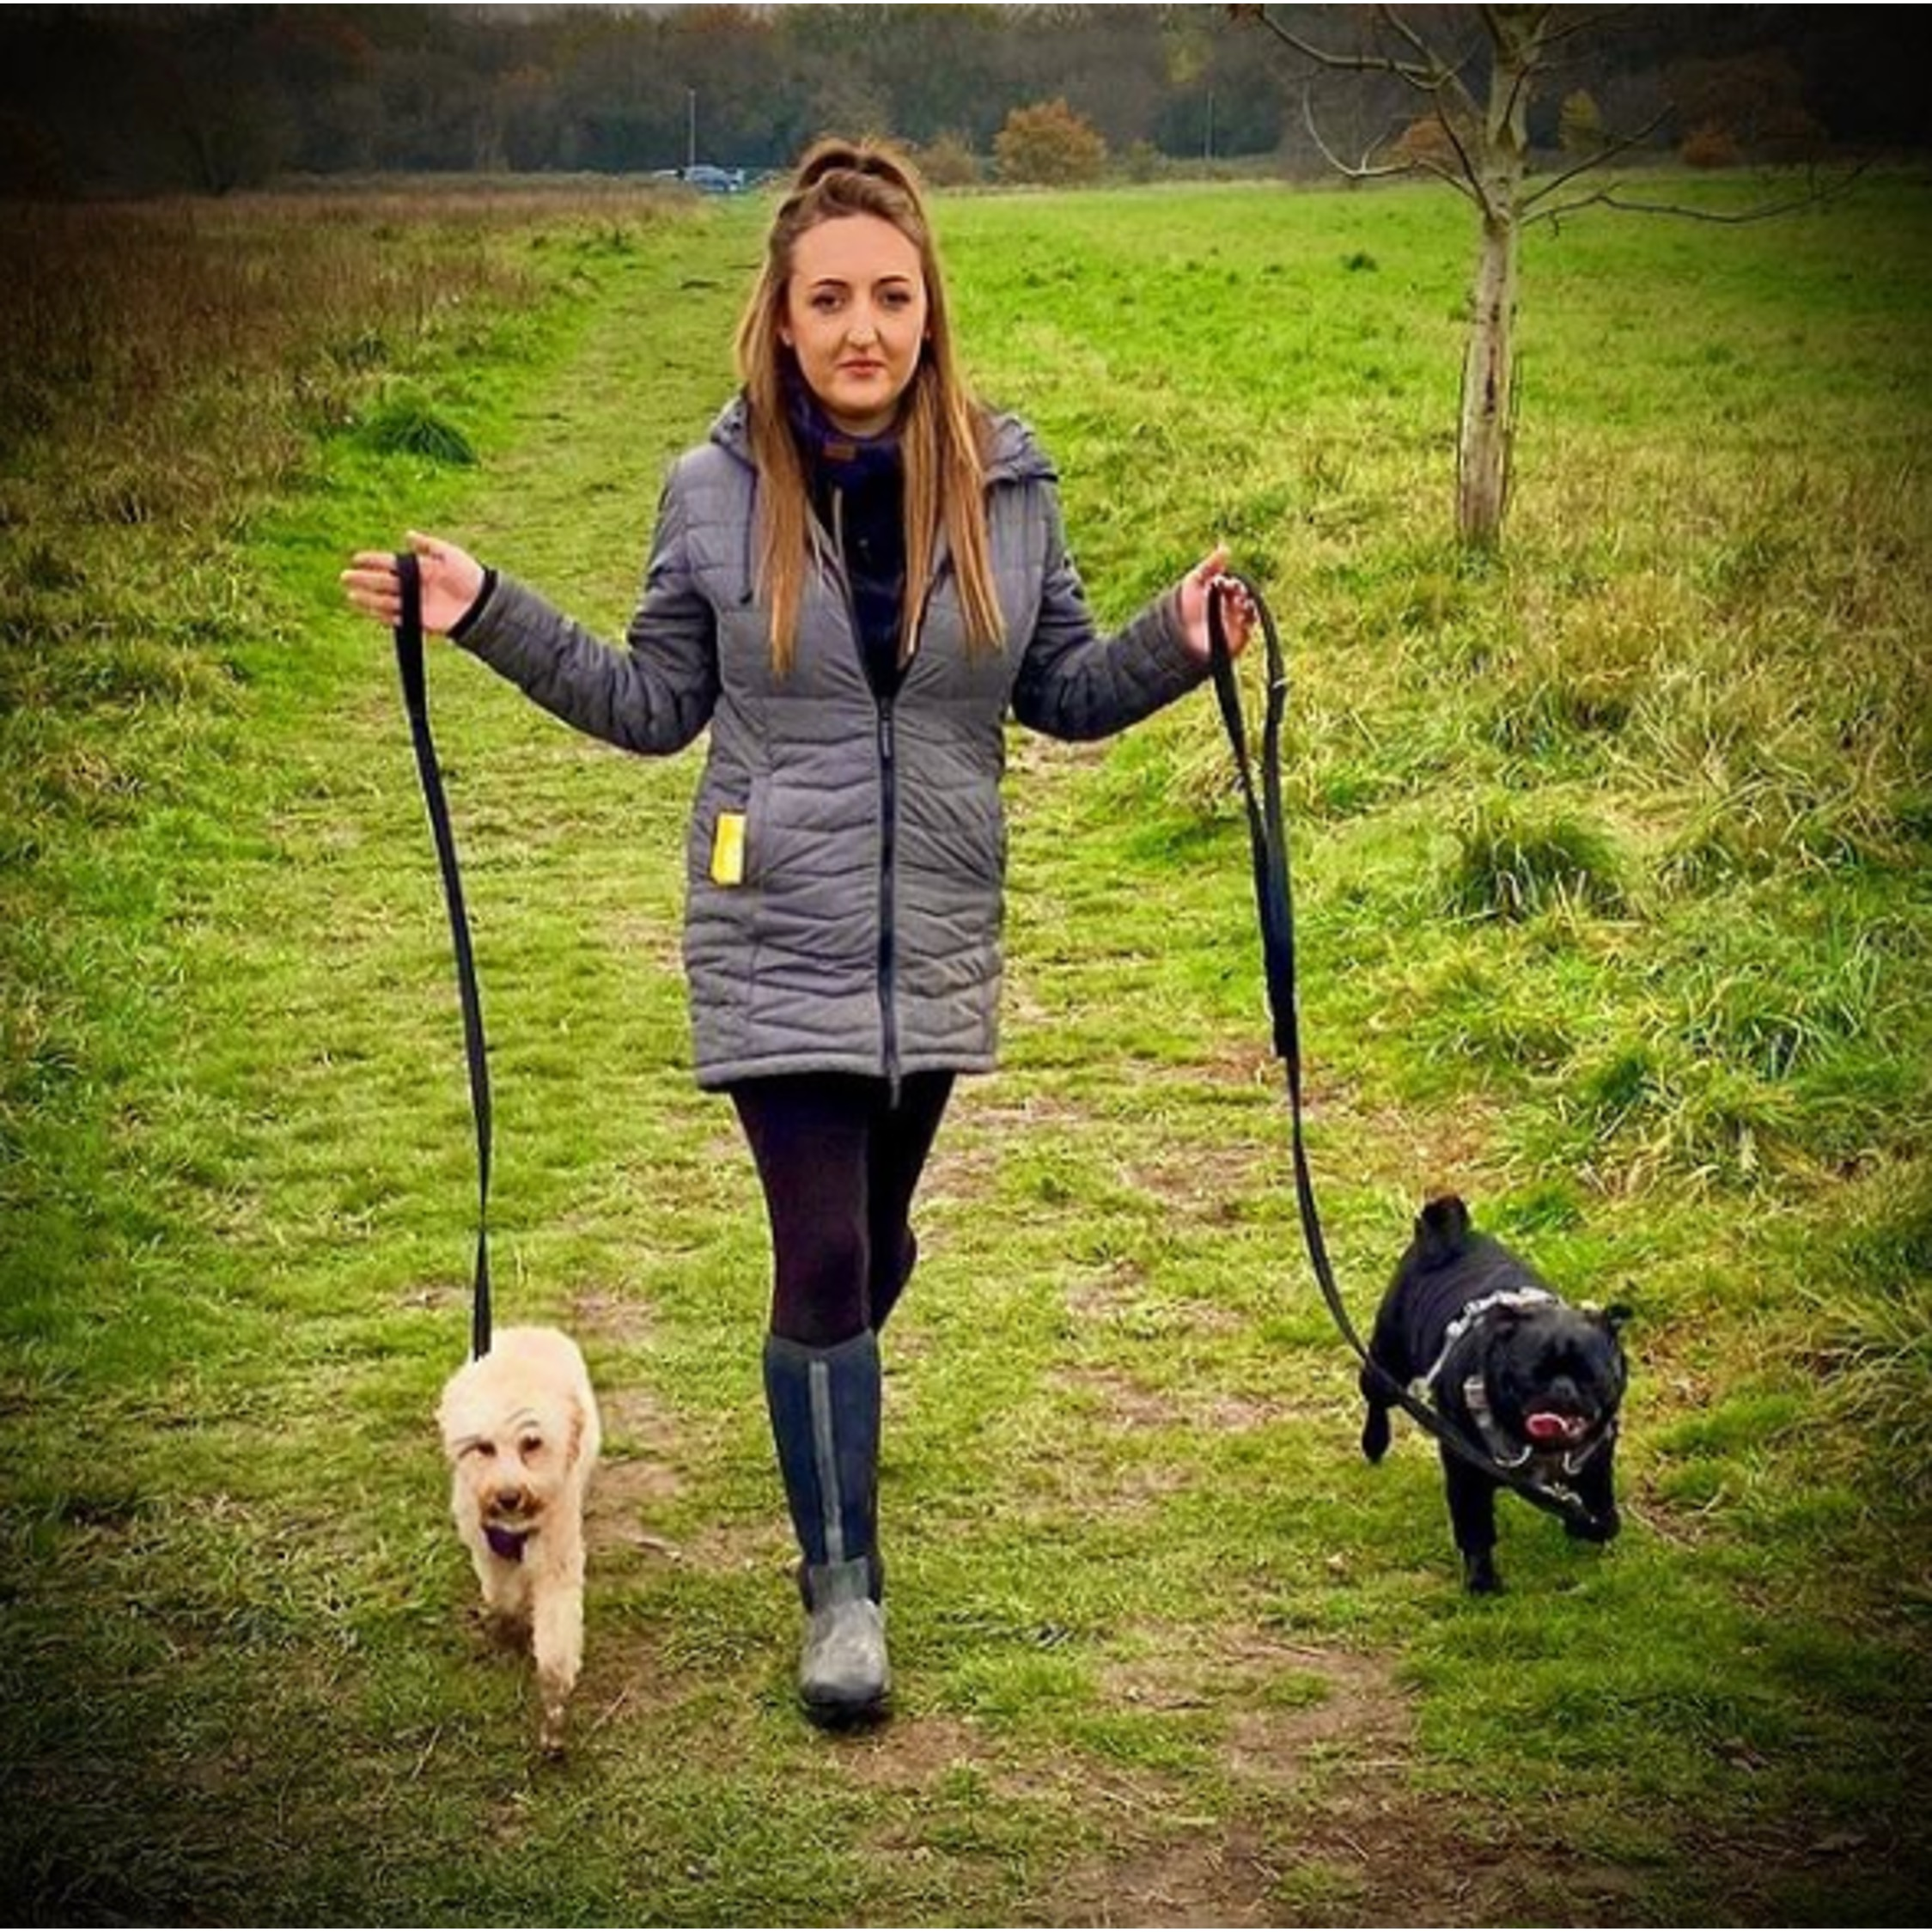 herts hiking hounds dog walking walker and training abbots kings langley hertfordshire pet photography29